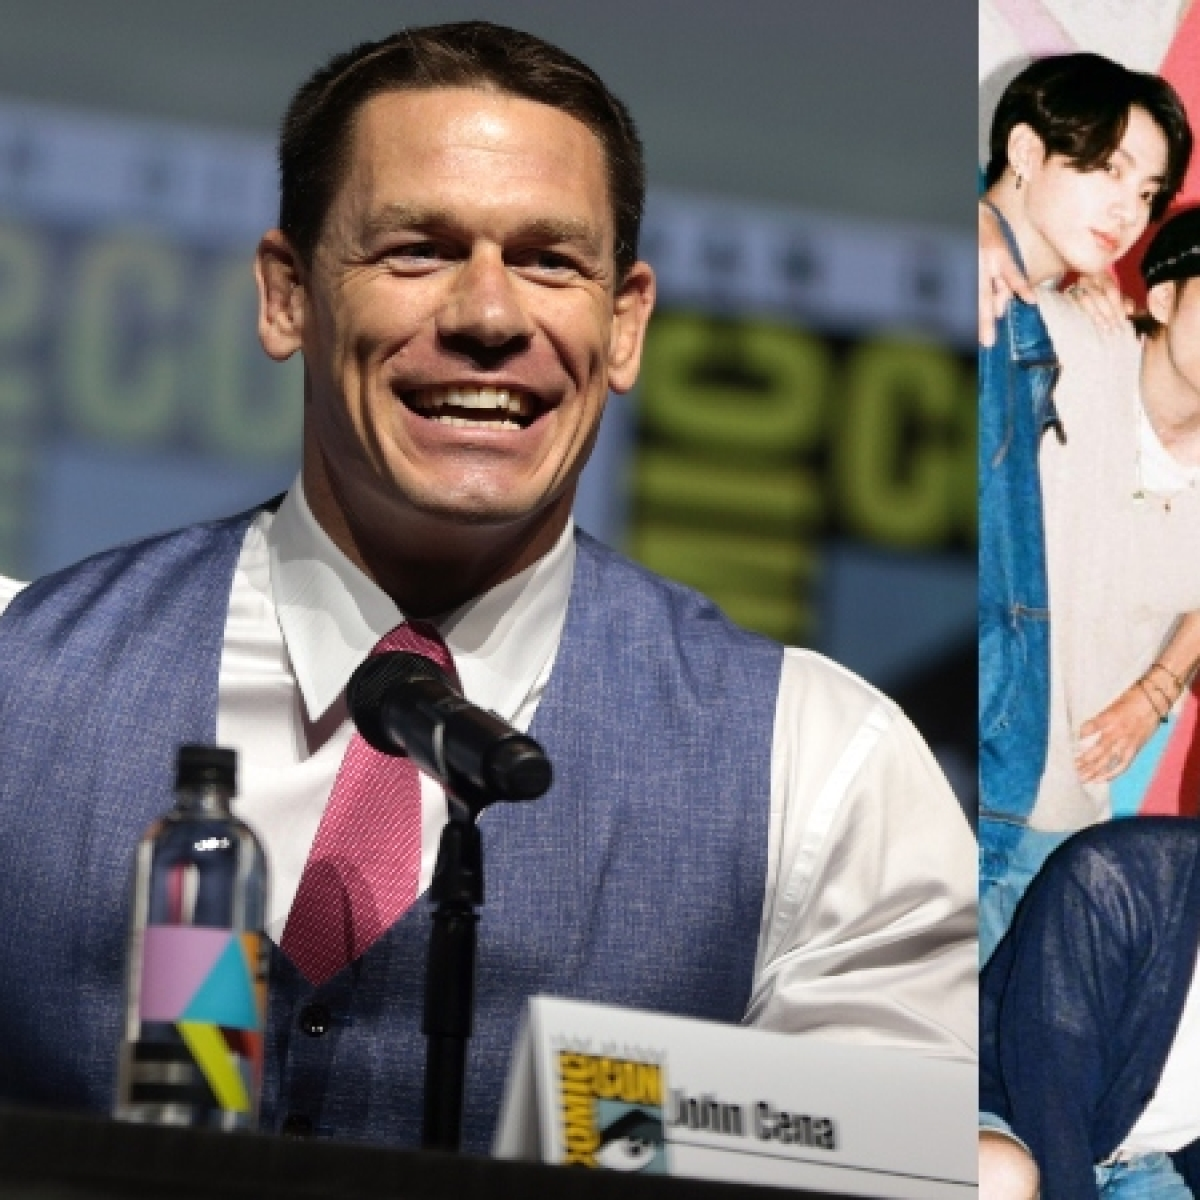 'I really got to thank BTS for supporting me': John Cena on how Army helped him at his 'vulnerable moment'